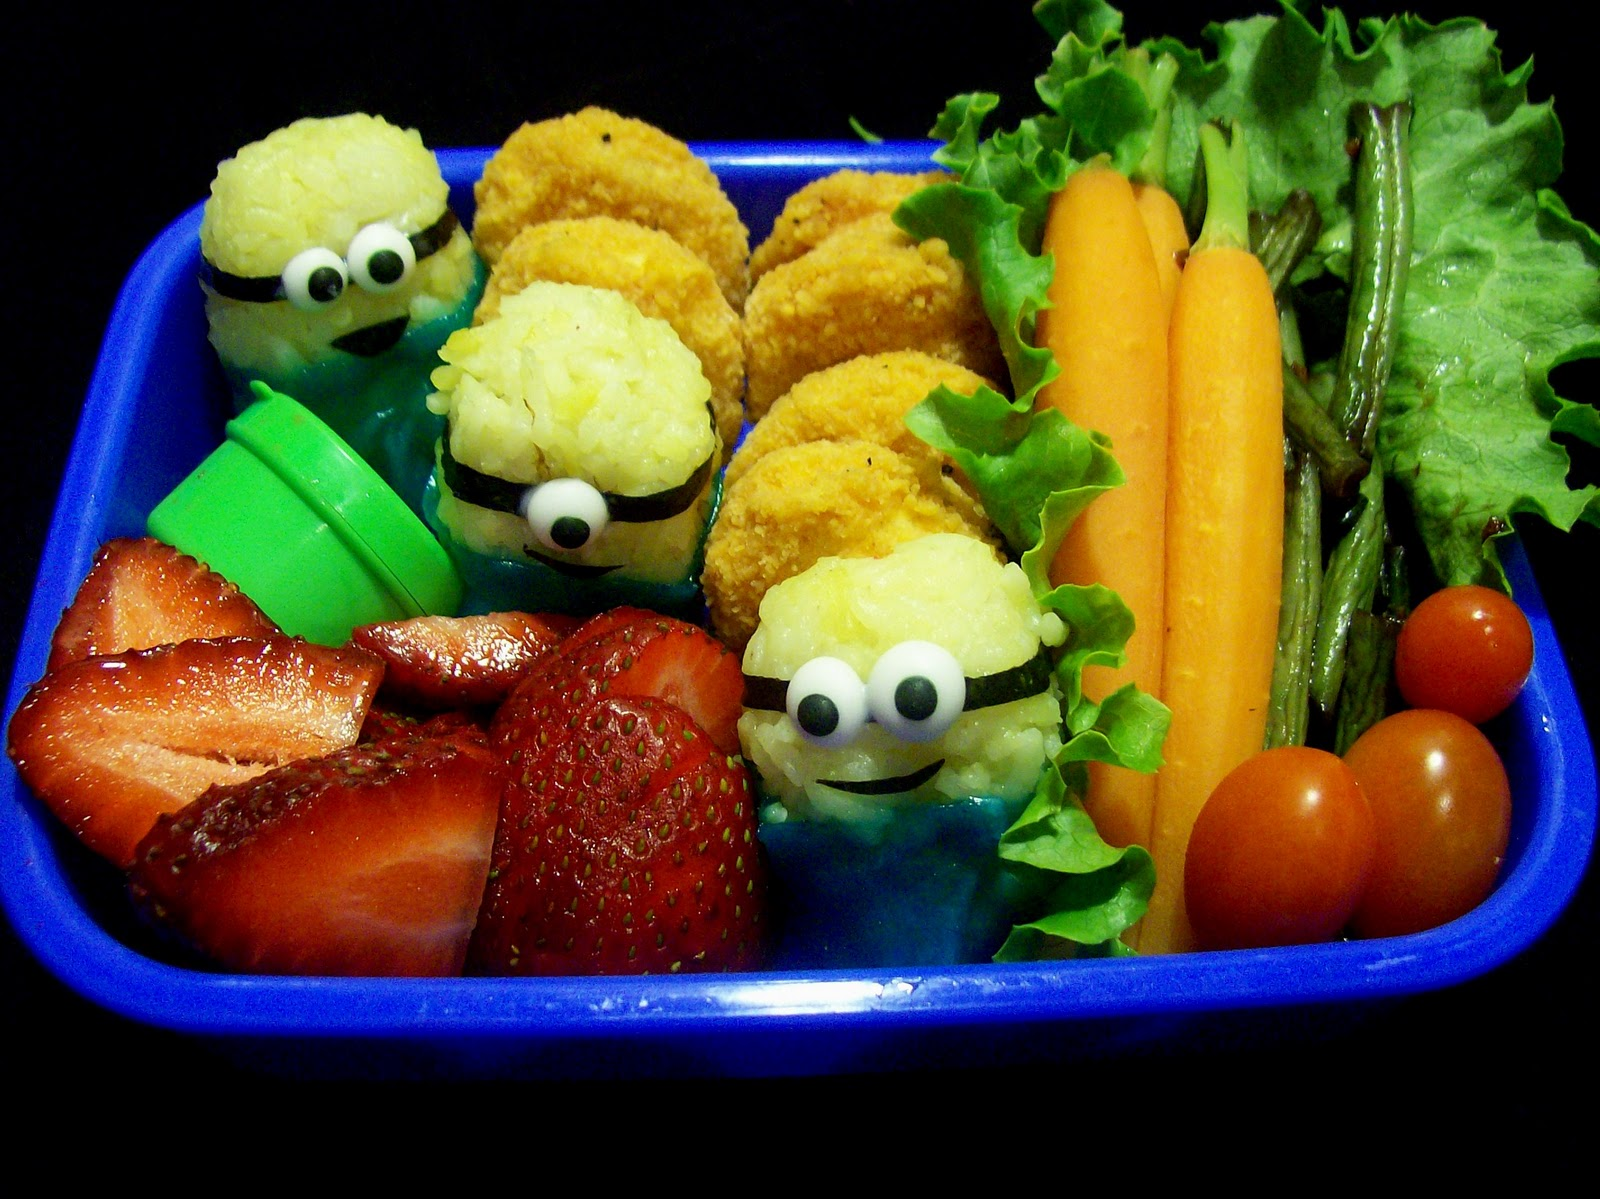 Minions in lunch box.